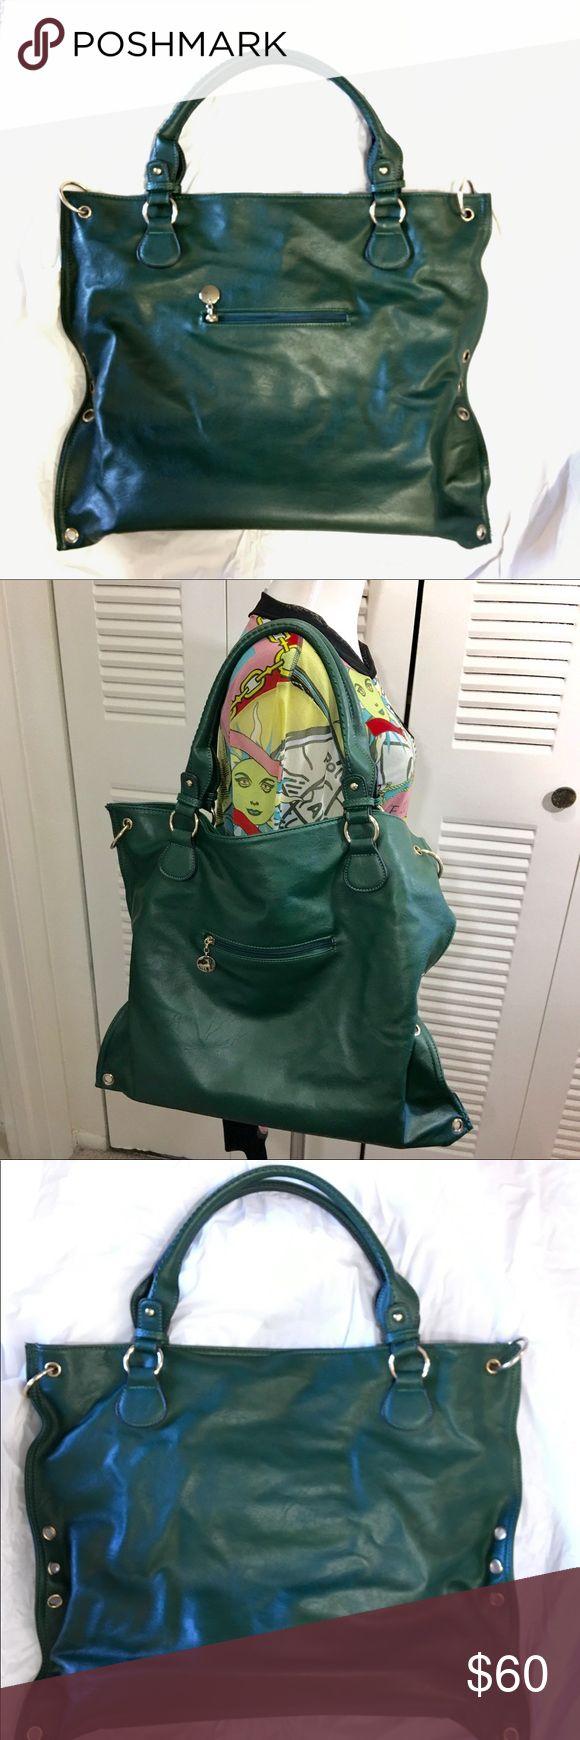 """Donna Bella Designs X-Large Tote Shoulder Bag Green leather with silver metal hardware. Outside zip pocket. Top zip inside 2-slip pockets & Bottom Zip. Clean & great condition. Height 17"""" length 20.5"""" depth 6.5"""" Drop 9"""" Donna Bella Designs Bags"""